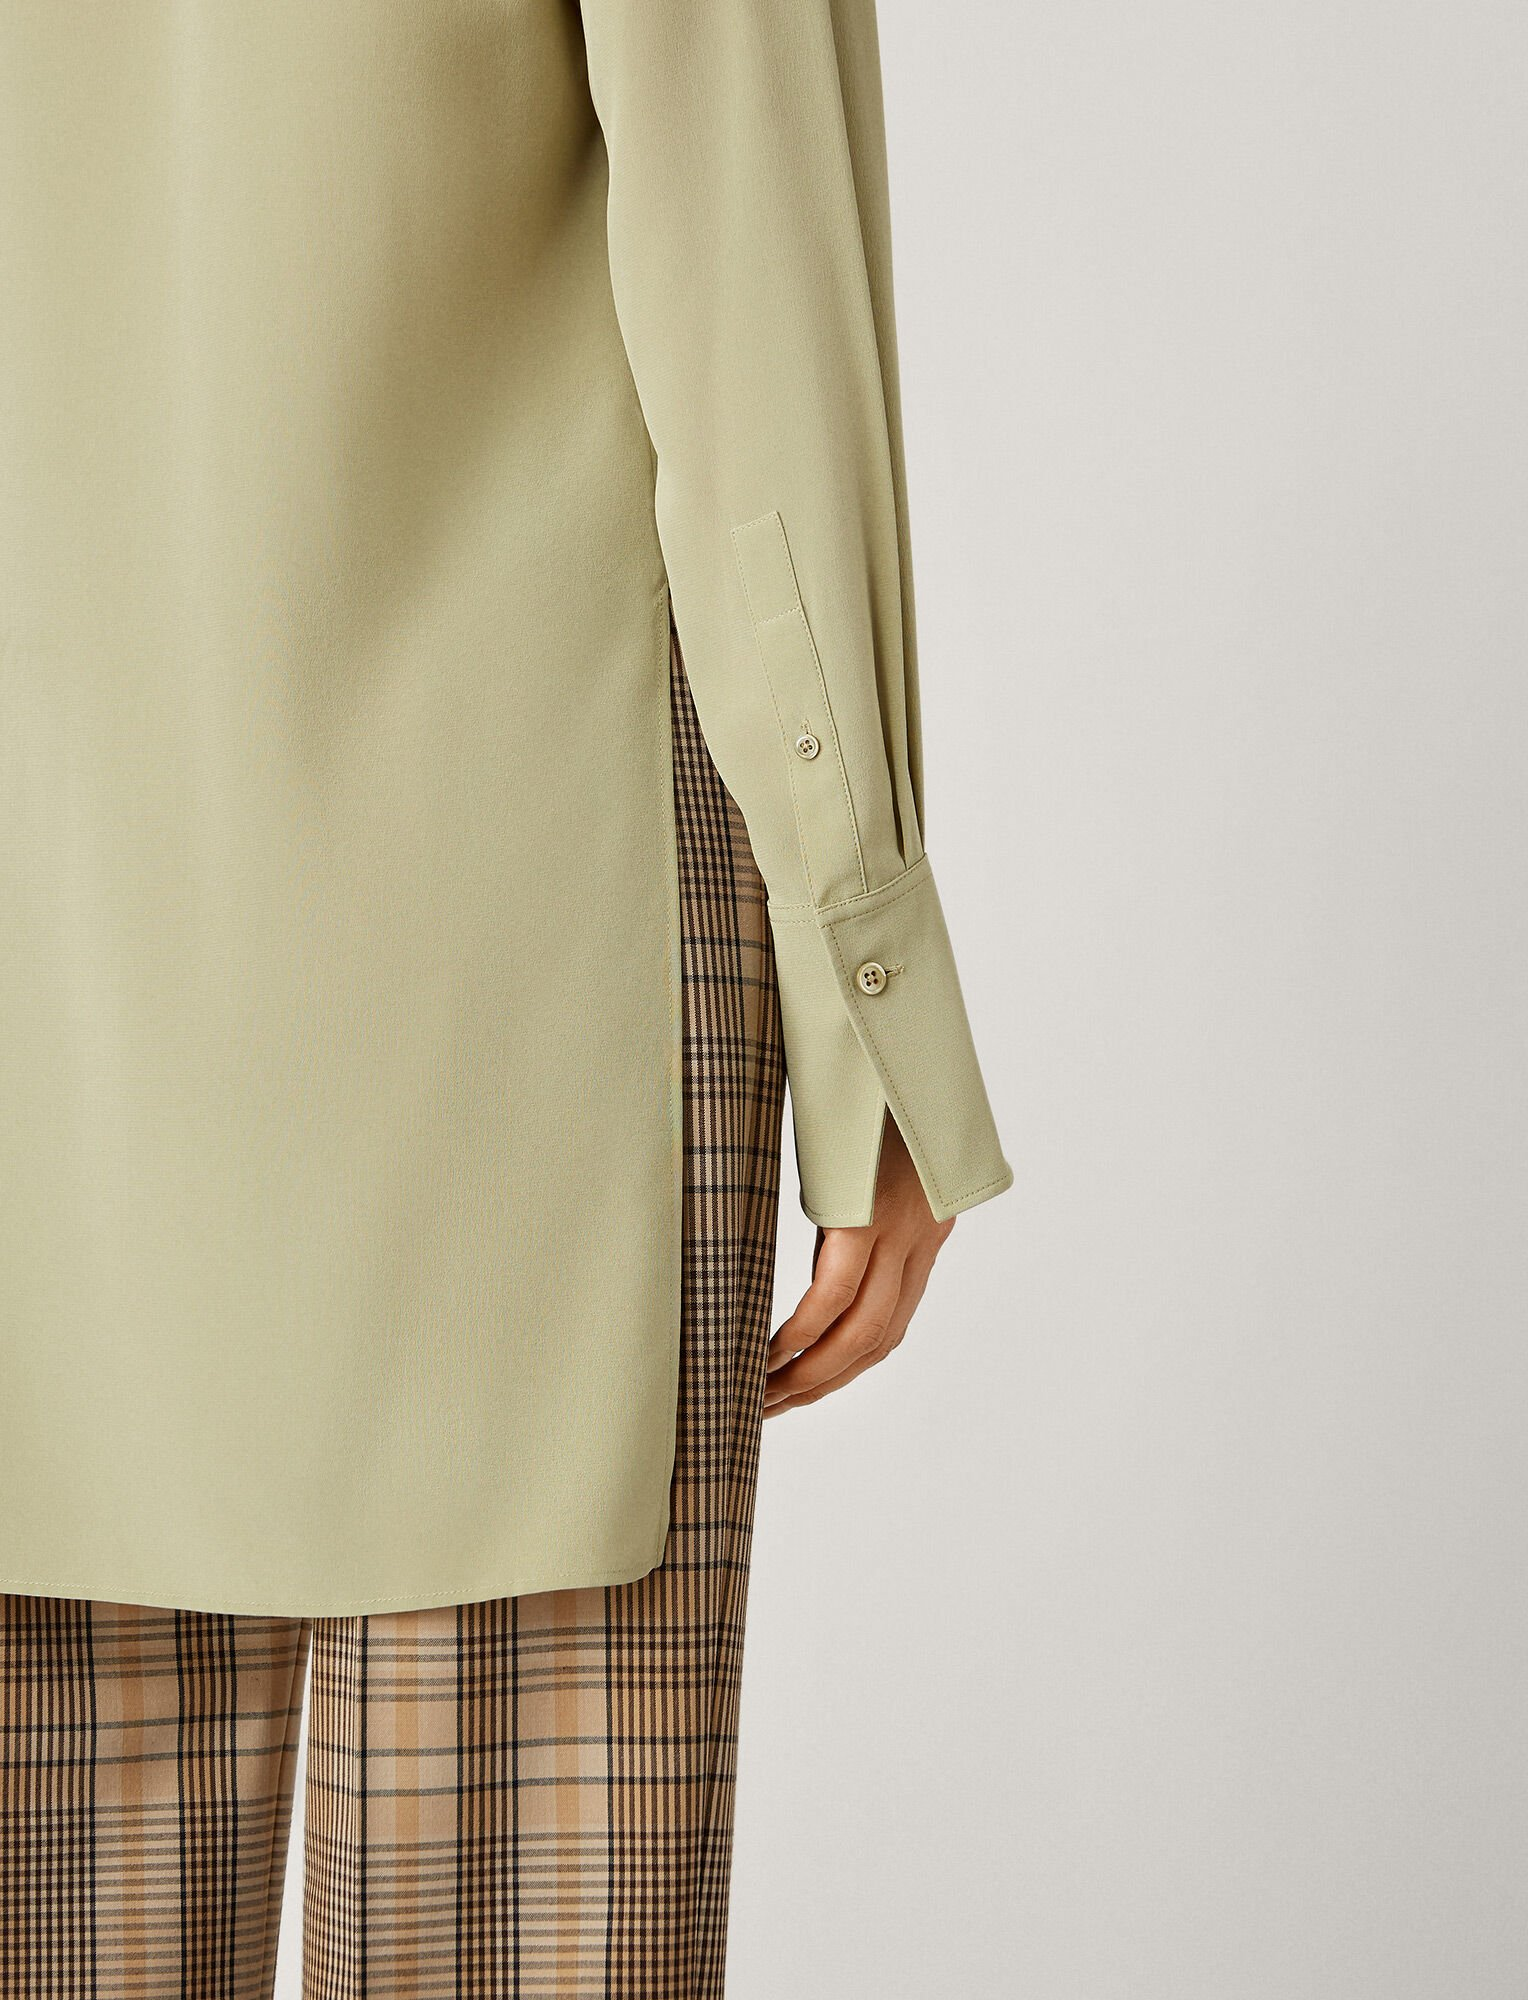 Joseph, Oldfield Crepe De Chine Blouse, in SAGE